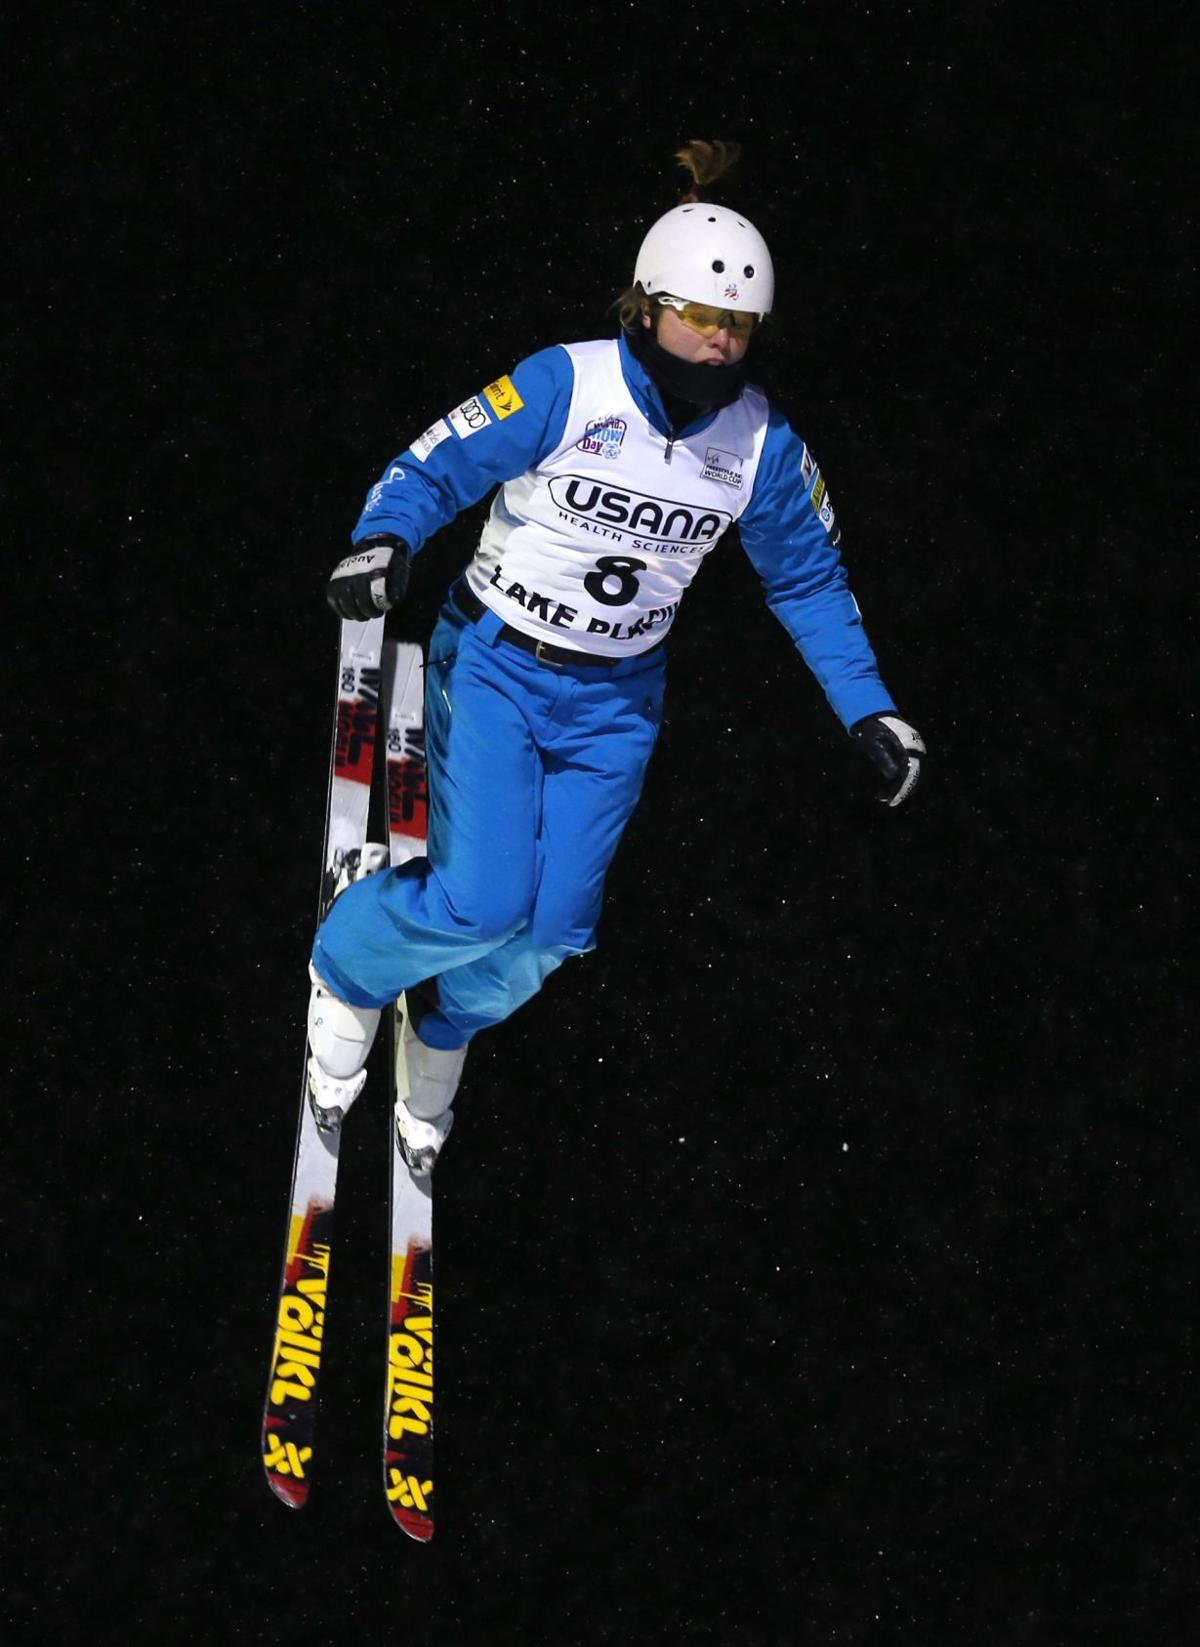 Cook, Caldwell earn spots on Olympic team in aerials